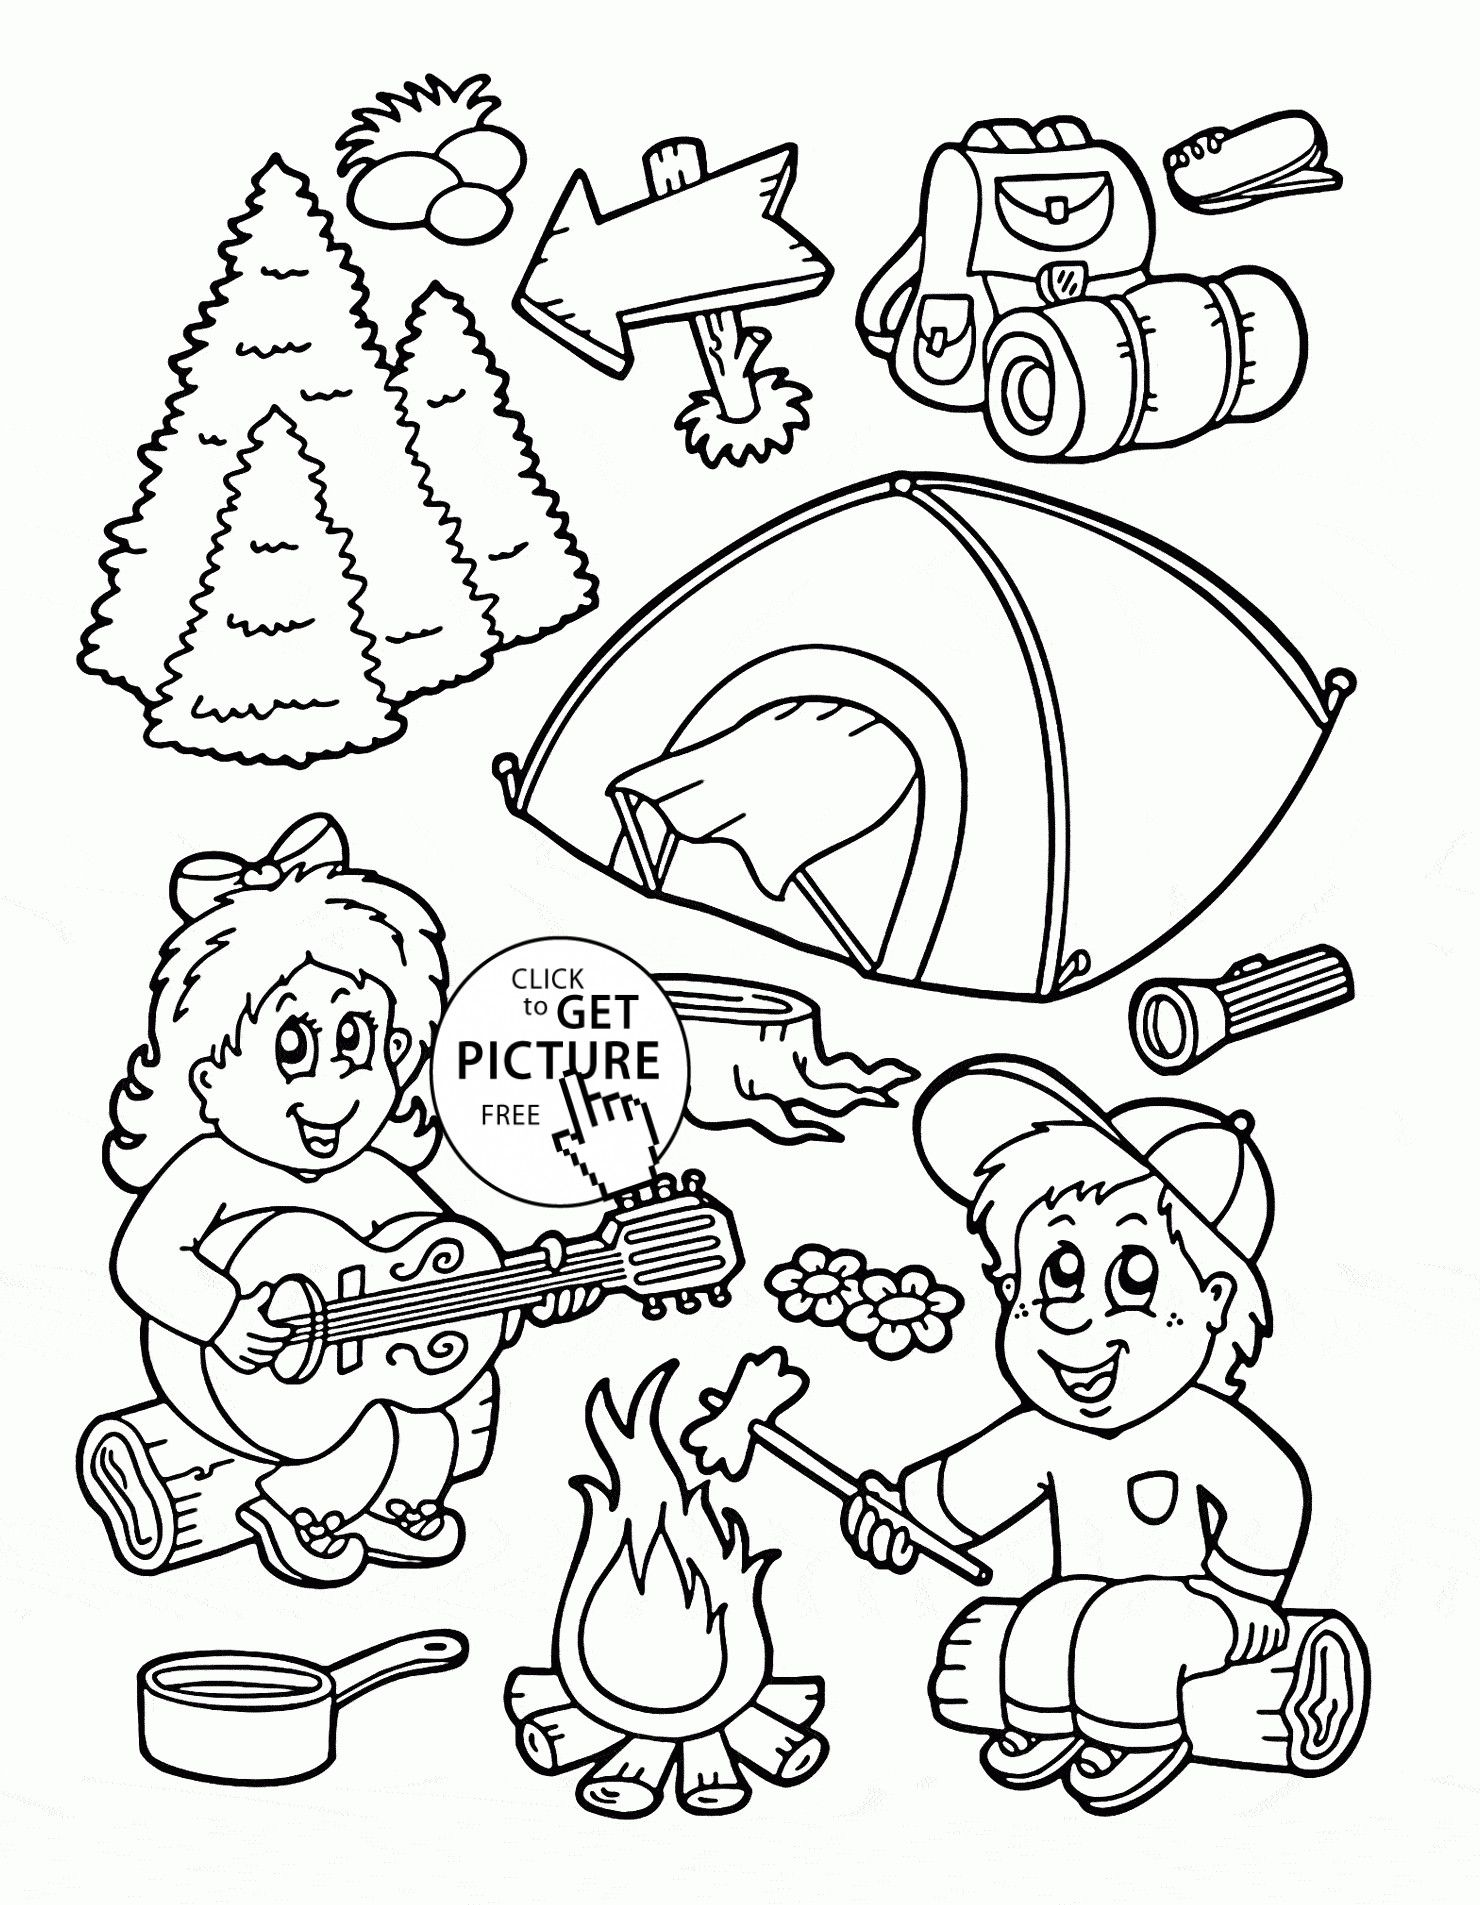 Coloring Pages For Summer Camp Free Http Www Wallpaperartdesignhd Us Coloring Pages F Camping Coloring Pages Free Printable Coloring Preschool Coloring Pages